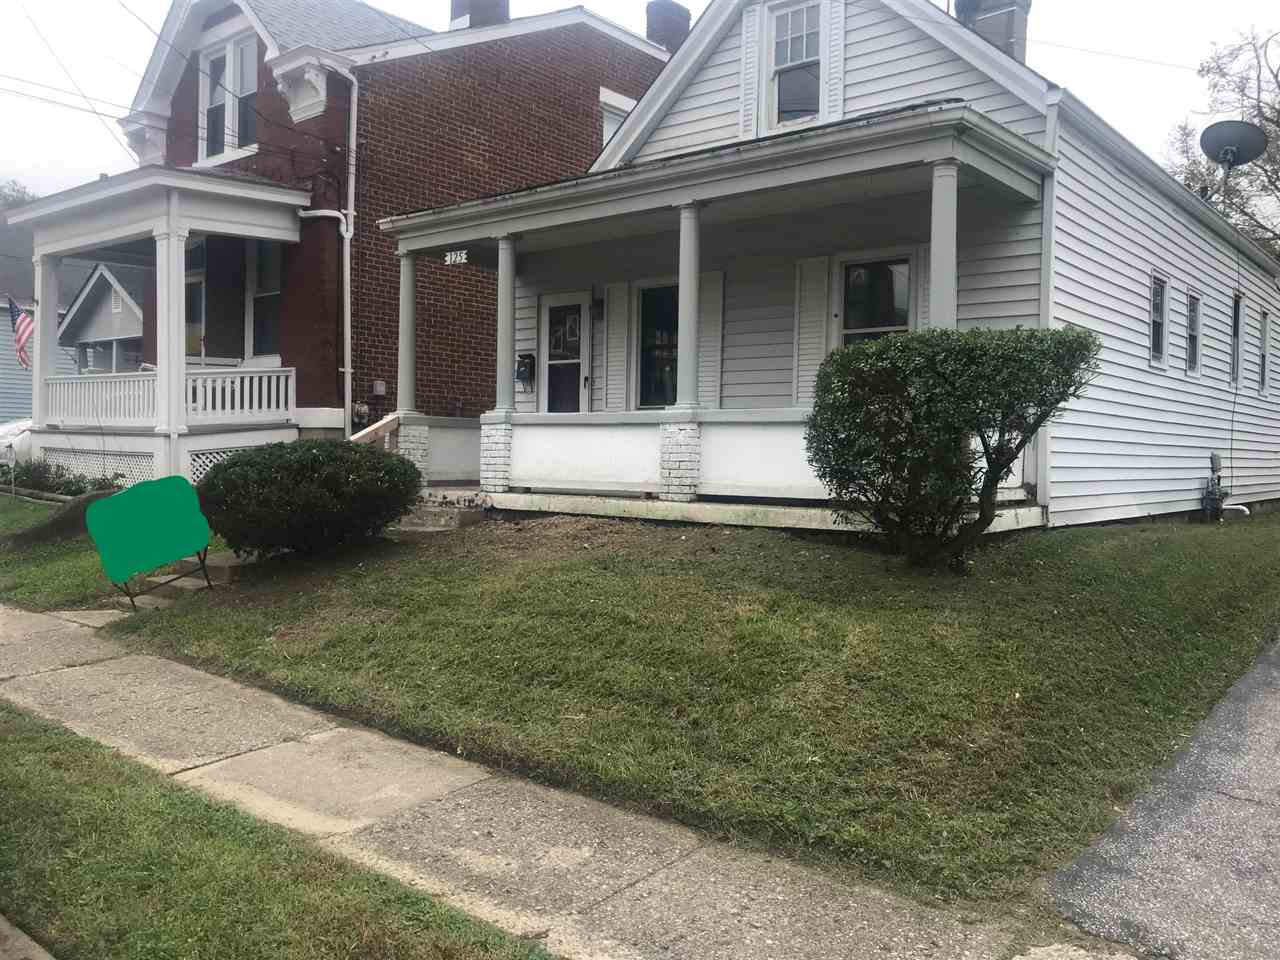 Photo 1 for 125 43rd E Covington, KY 41015